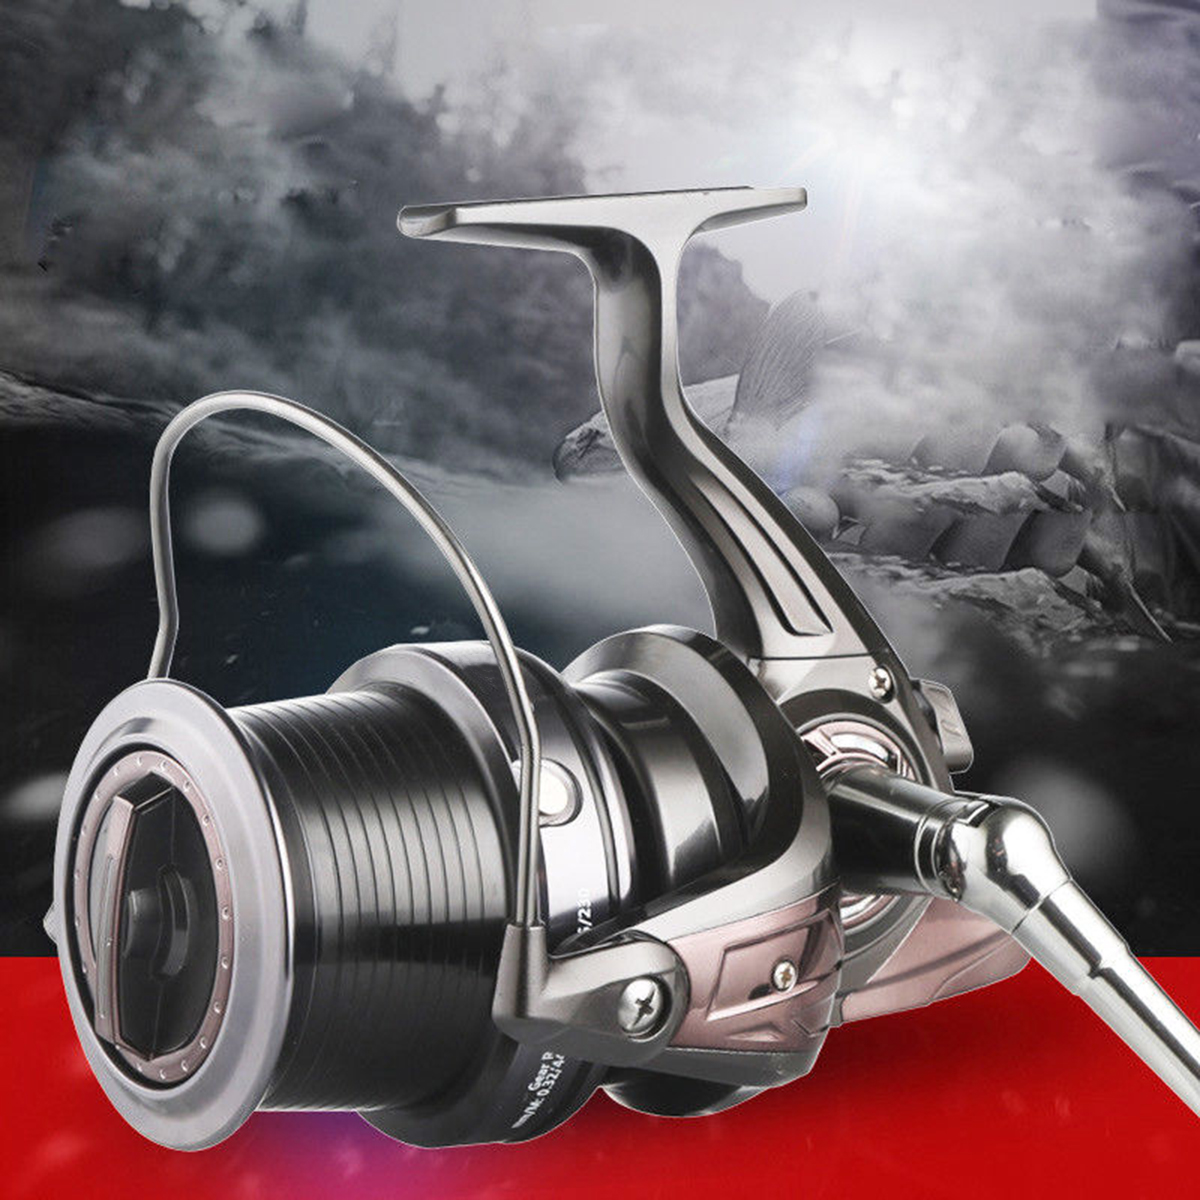 ZANLURE 5.1:1 13+1BB Metal Spinning Reel 5000 6000 9000 Long Casting Saltwater Fishing Reel